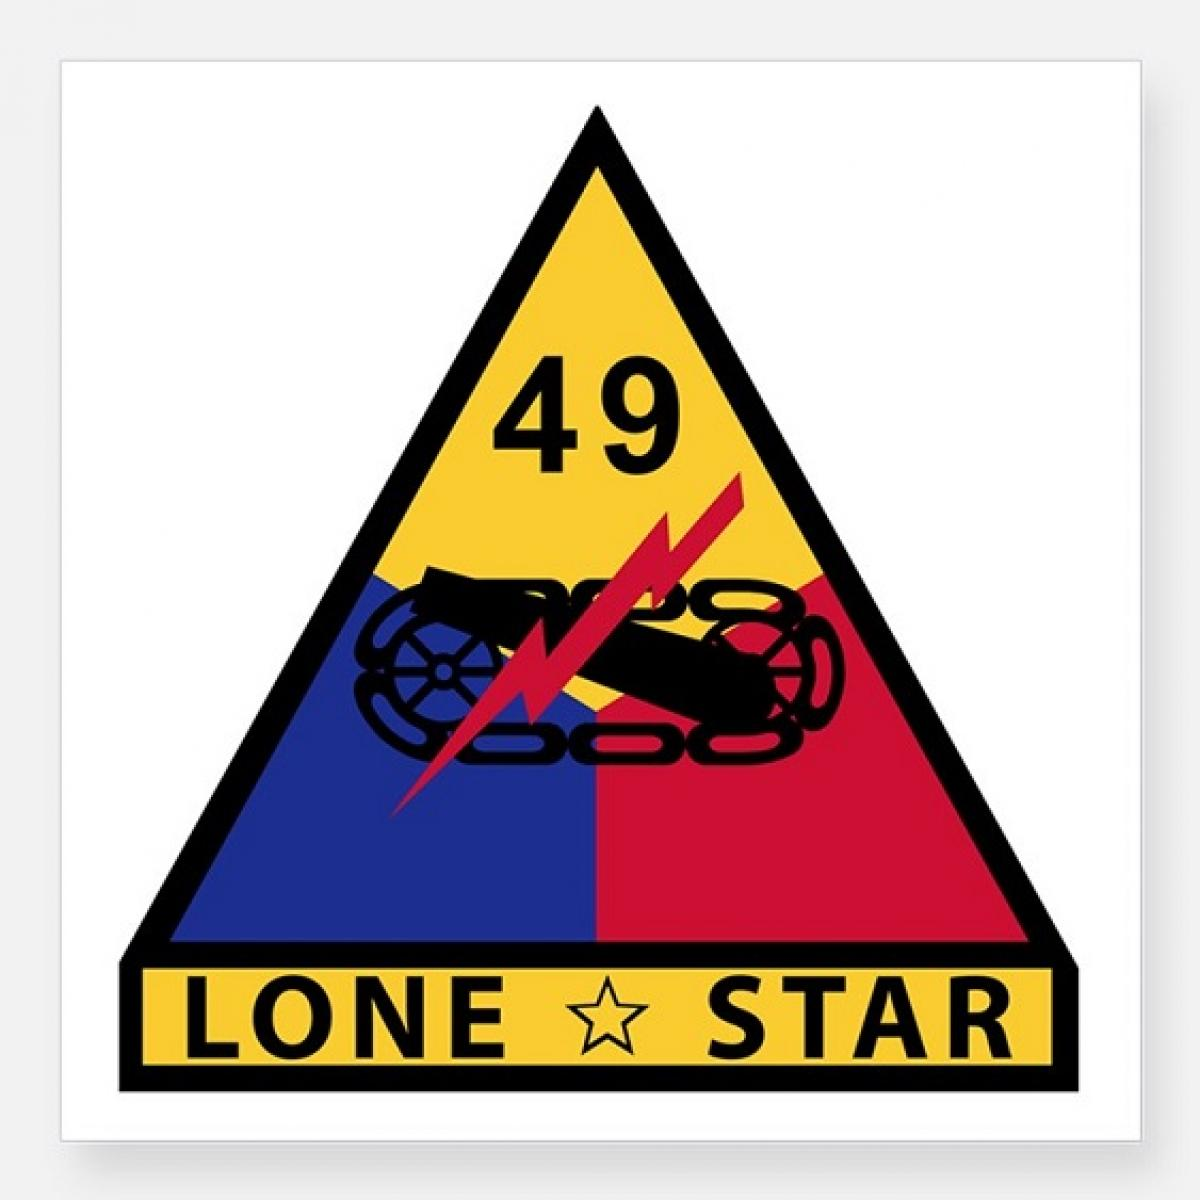 United states army 49th armored division lone star city of ok grove headstone symbols and meanings u s army 49th armored division lone biocorpaavc Image collections